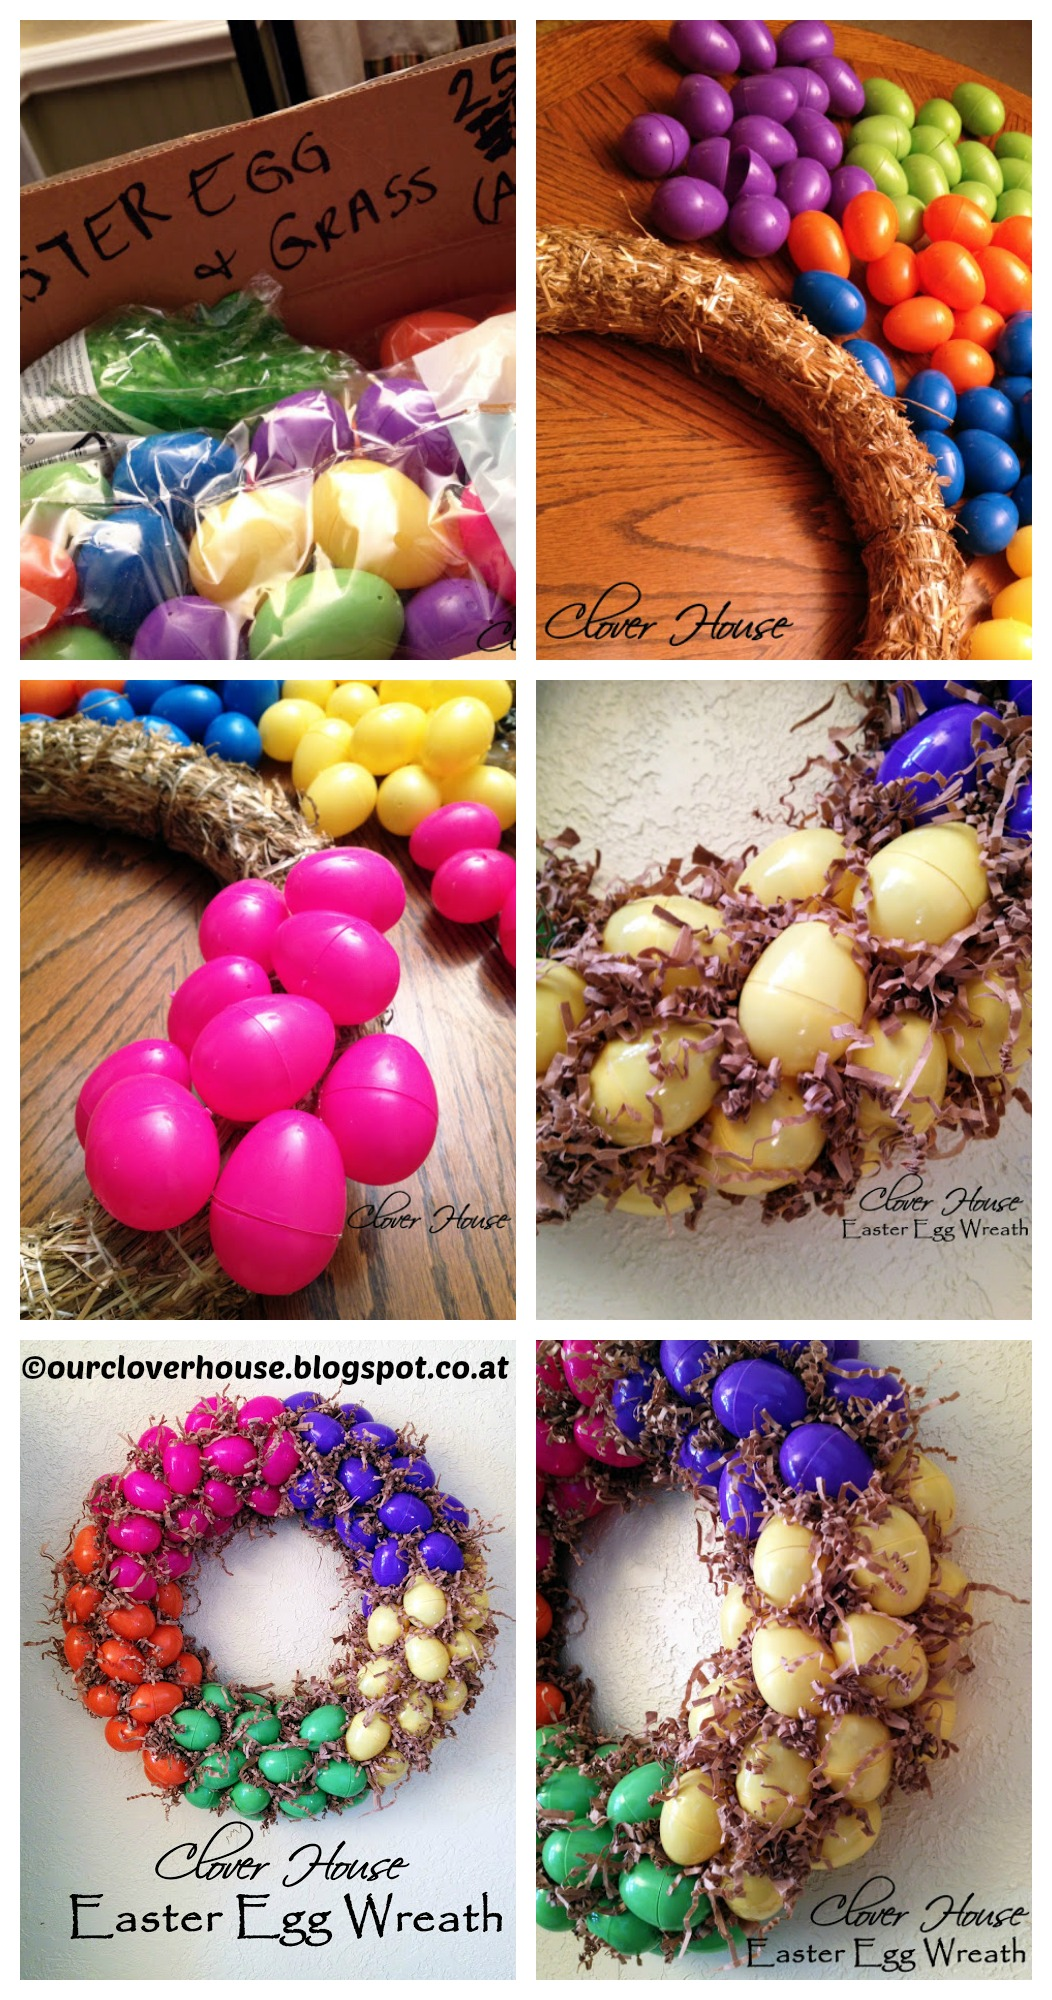 How to make an Easter Egg Wreath